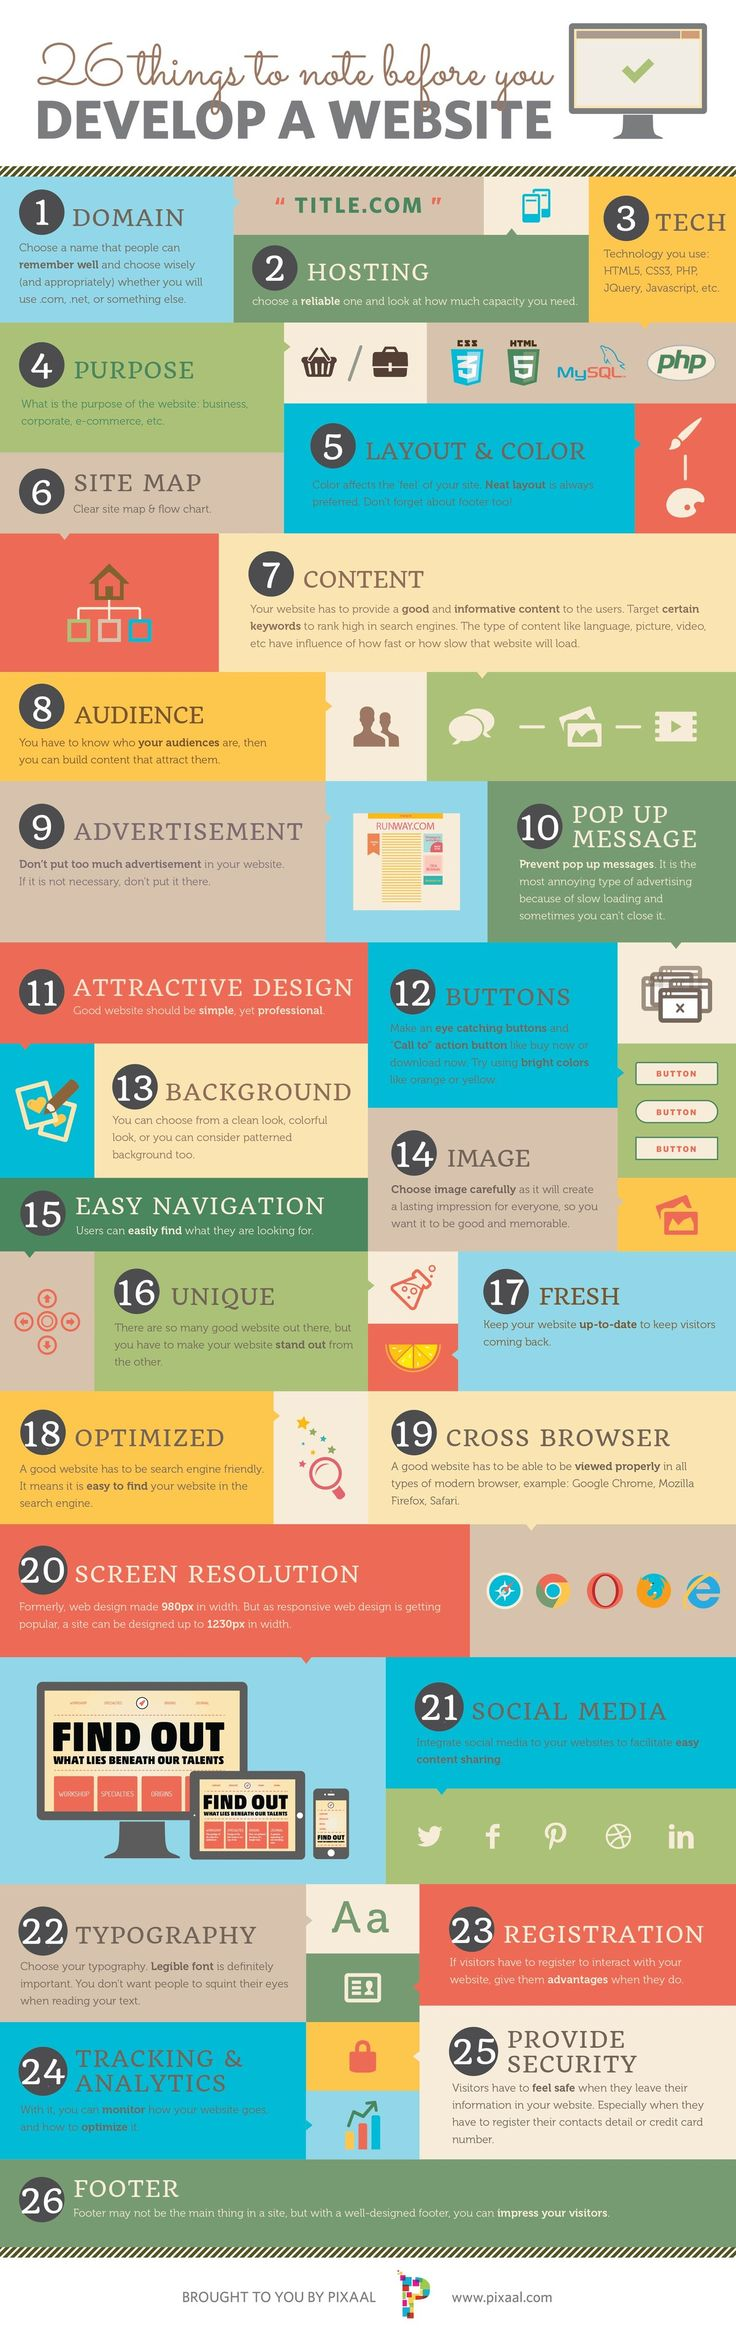 Strategies for Promotion Using Electronic Resources - 20 Useful Infographics Featuring Web Deisgn Tips & Tricks